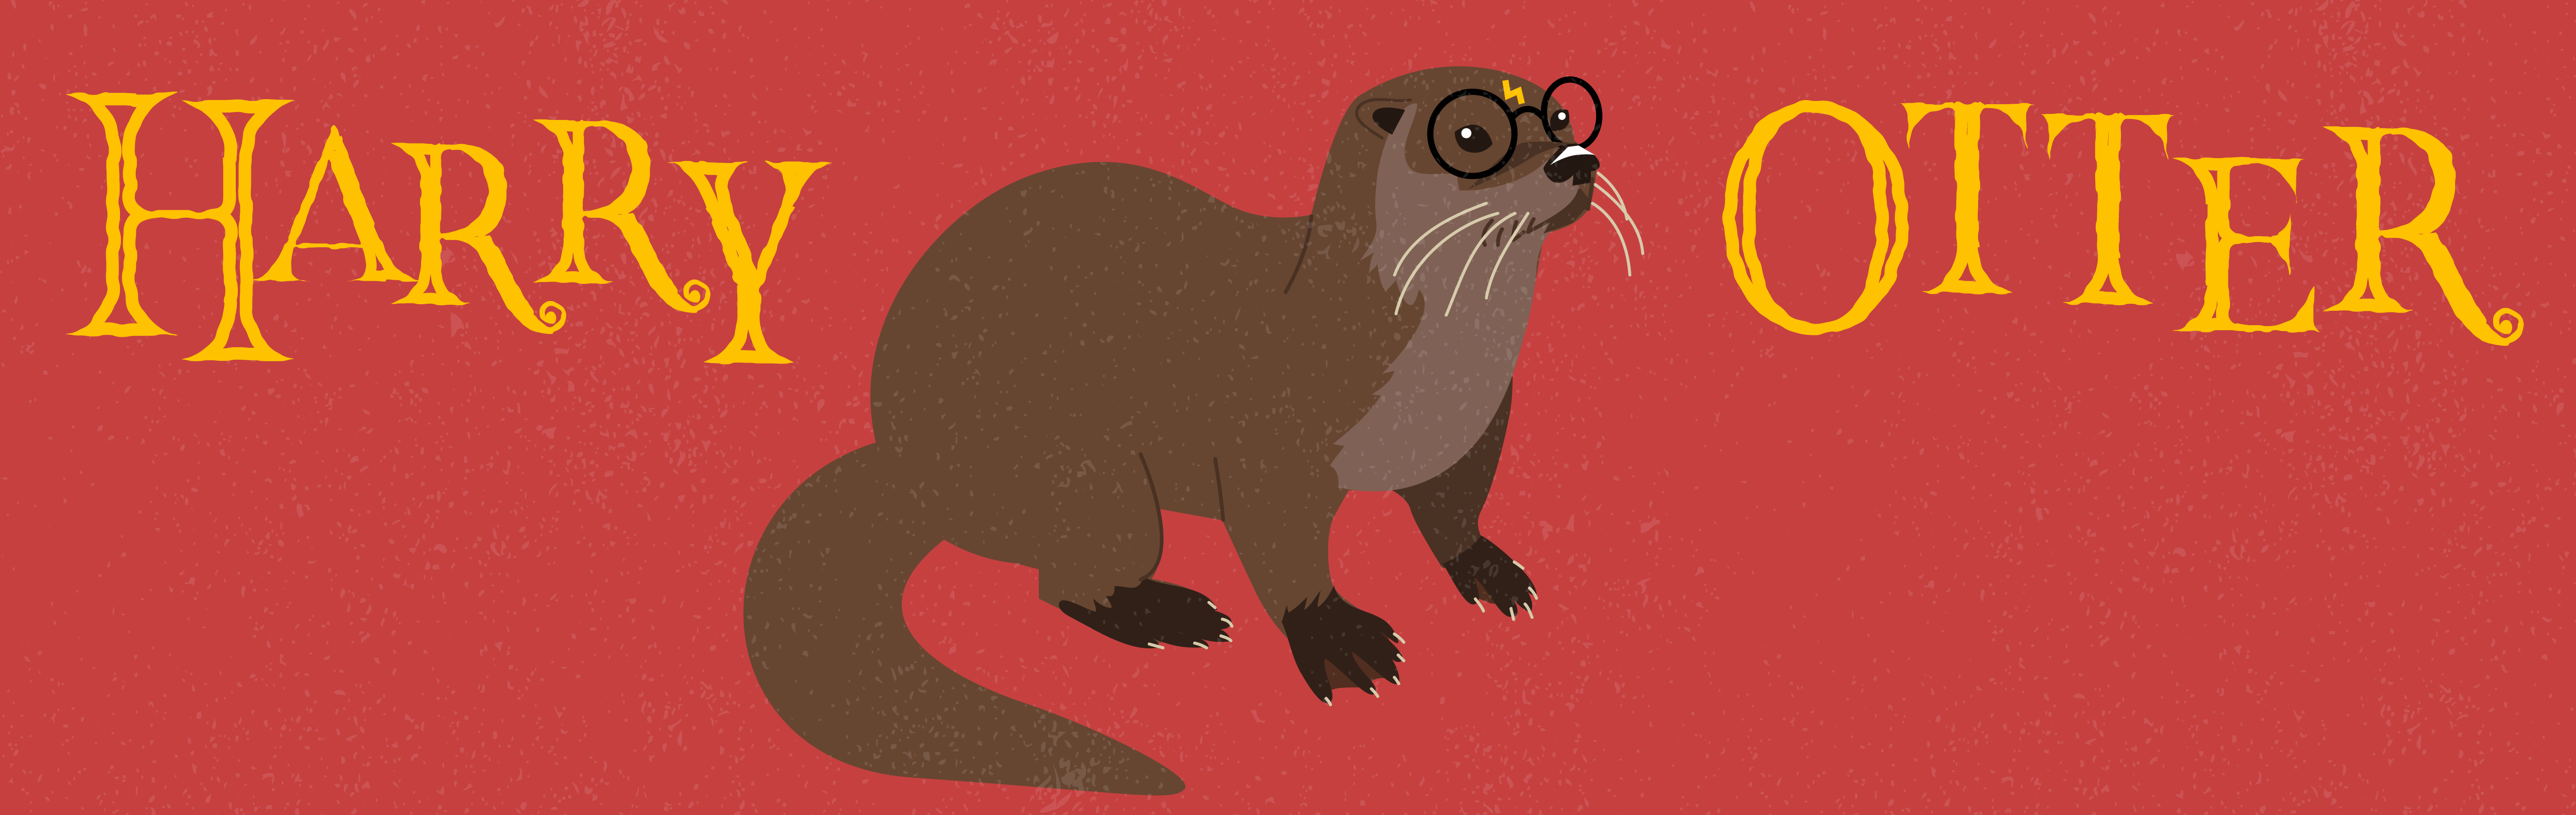 harry otter for letters 1-02 (2)